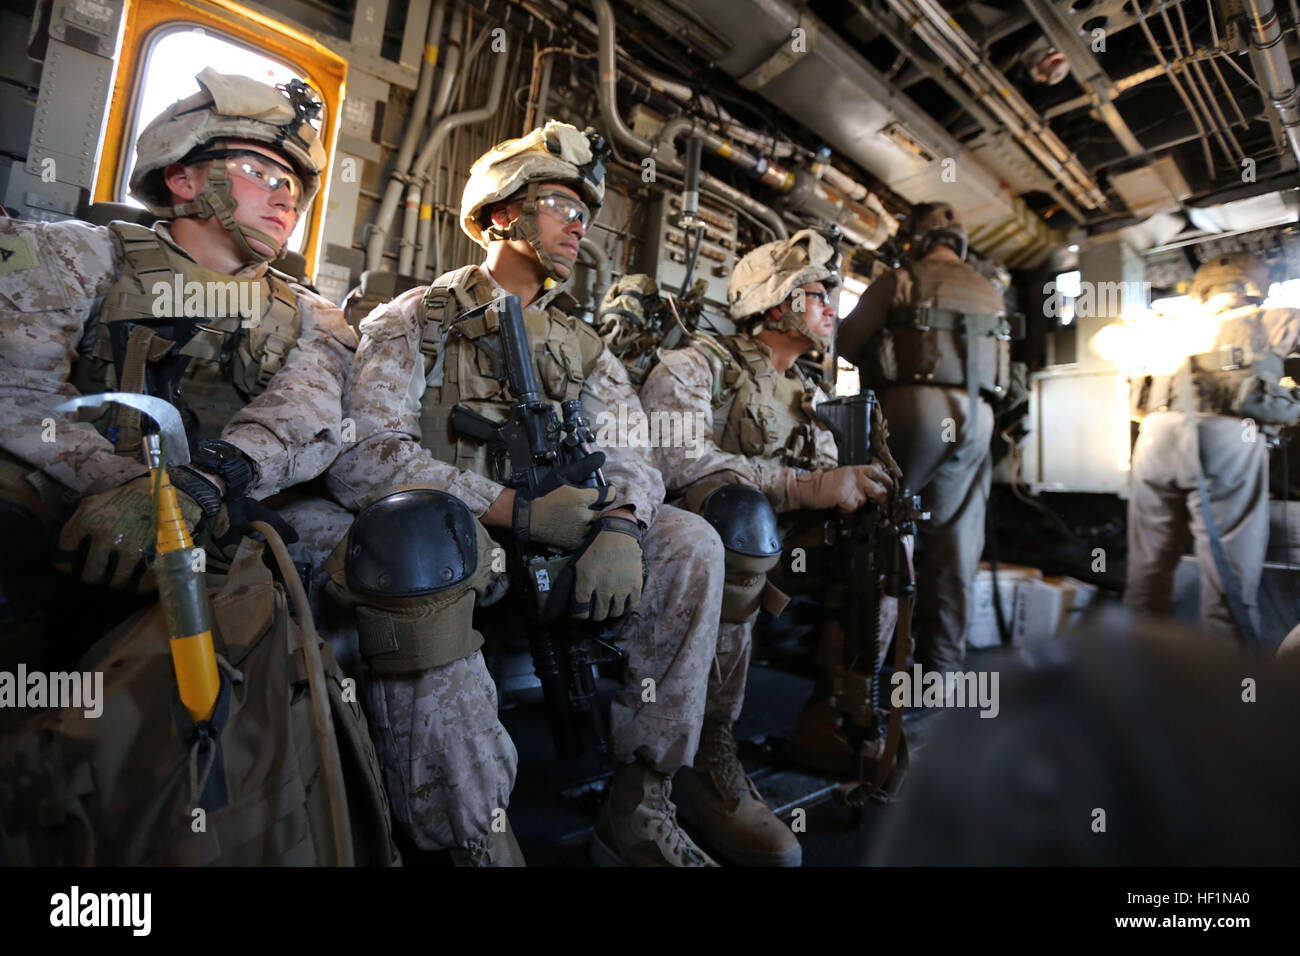 U.S. Marines with Bravo Company, 1st Battalion, 9th Marines Regiment are transported by a CH-53 Super Stallion over Stock Photo